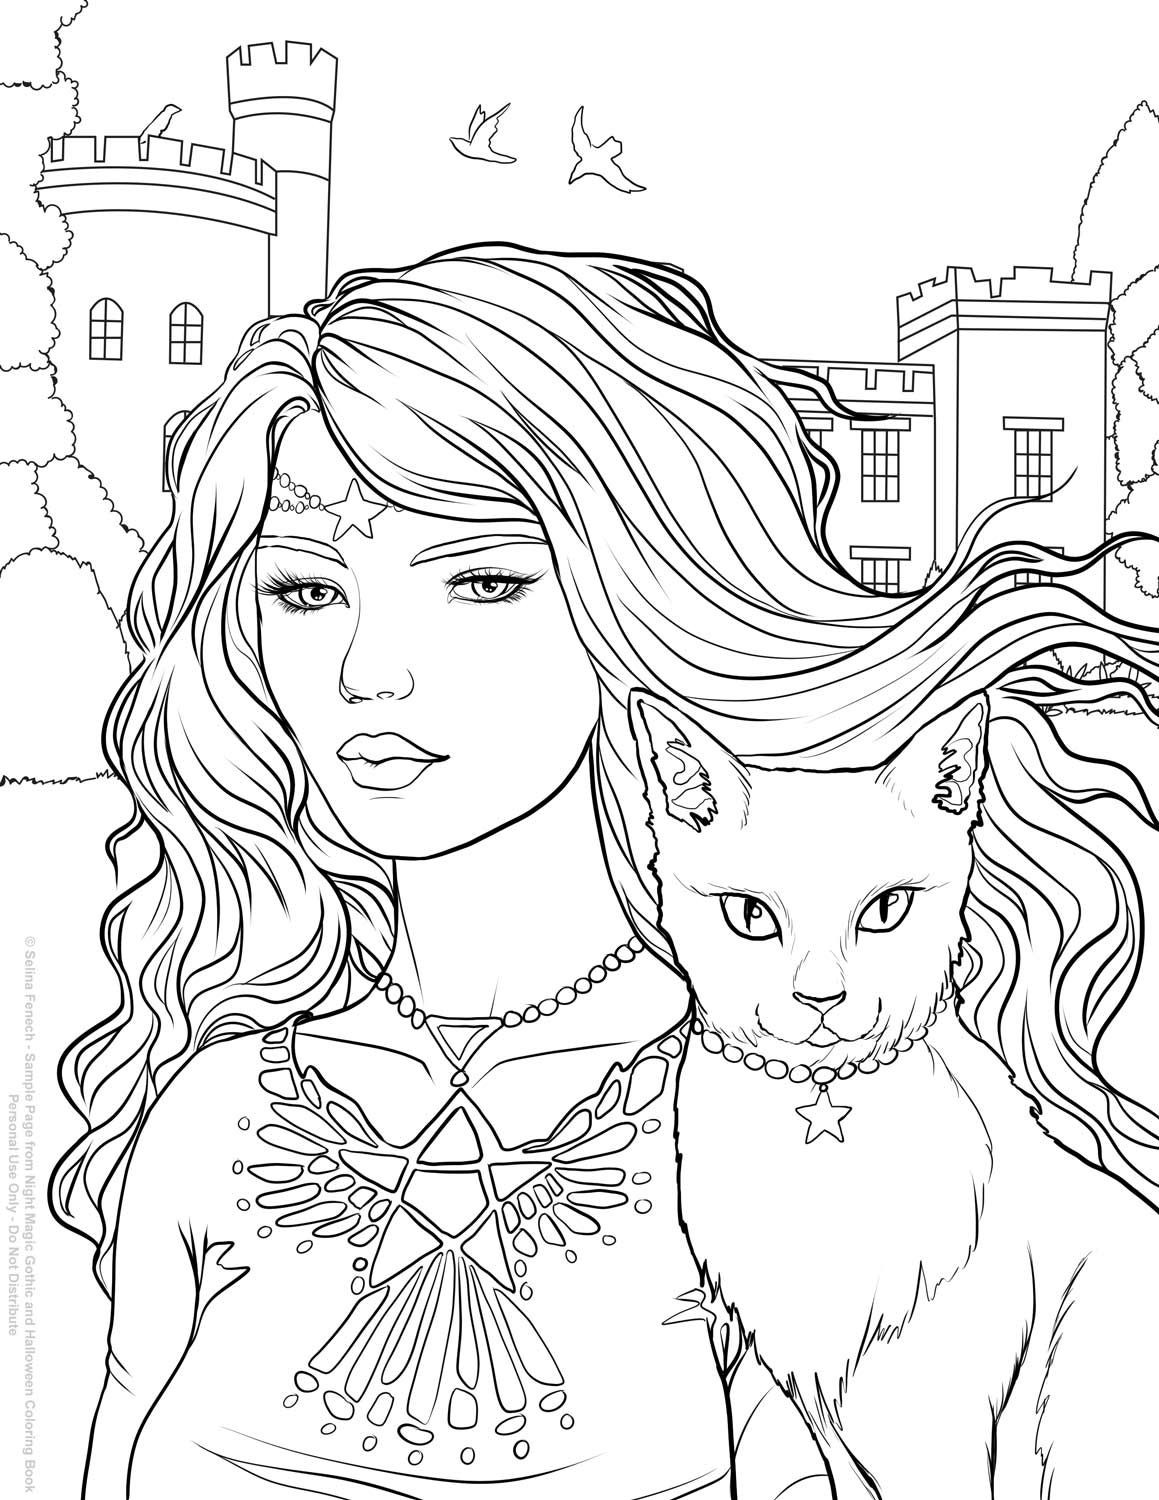 hot girl coloring pages hot anime girls coloring pages for adults with images coloring girl hot pages